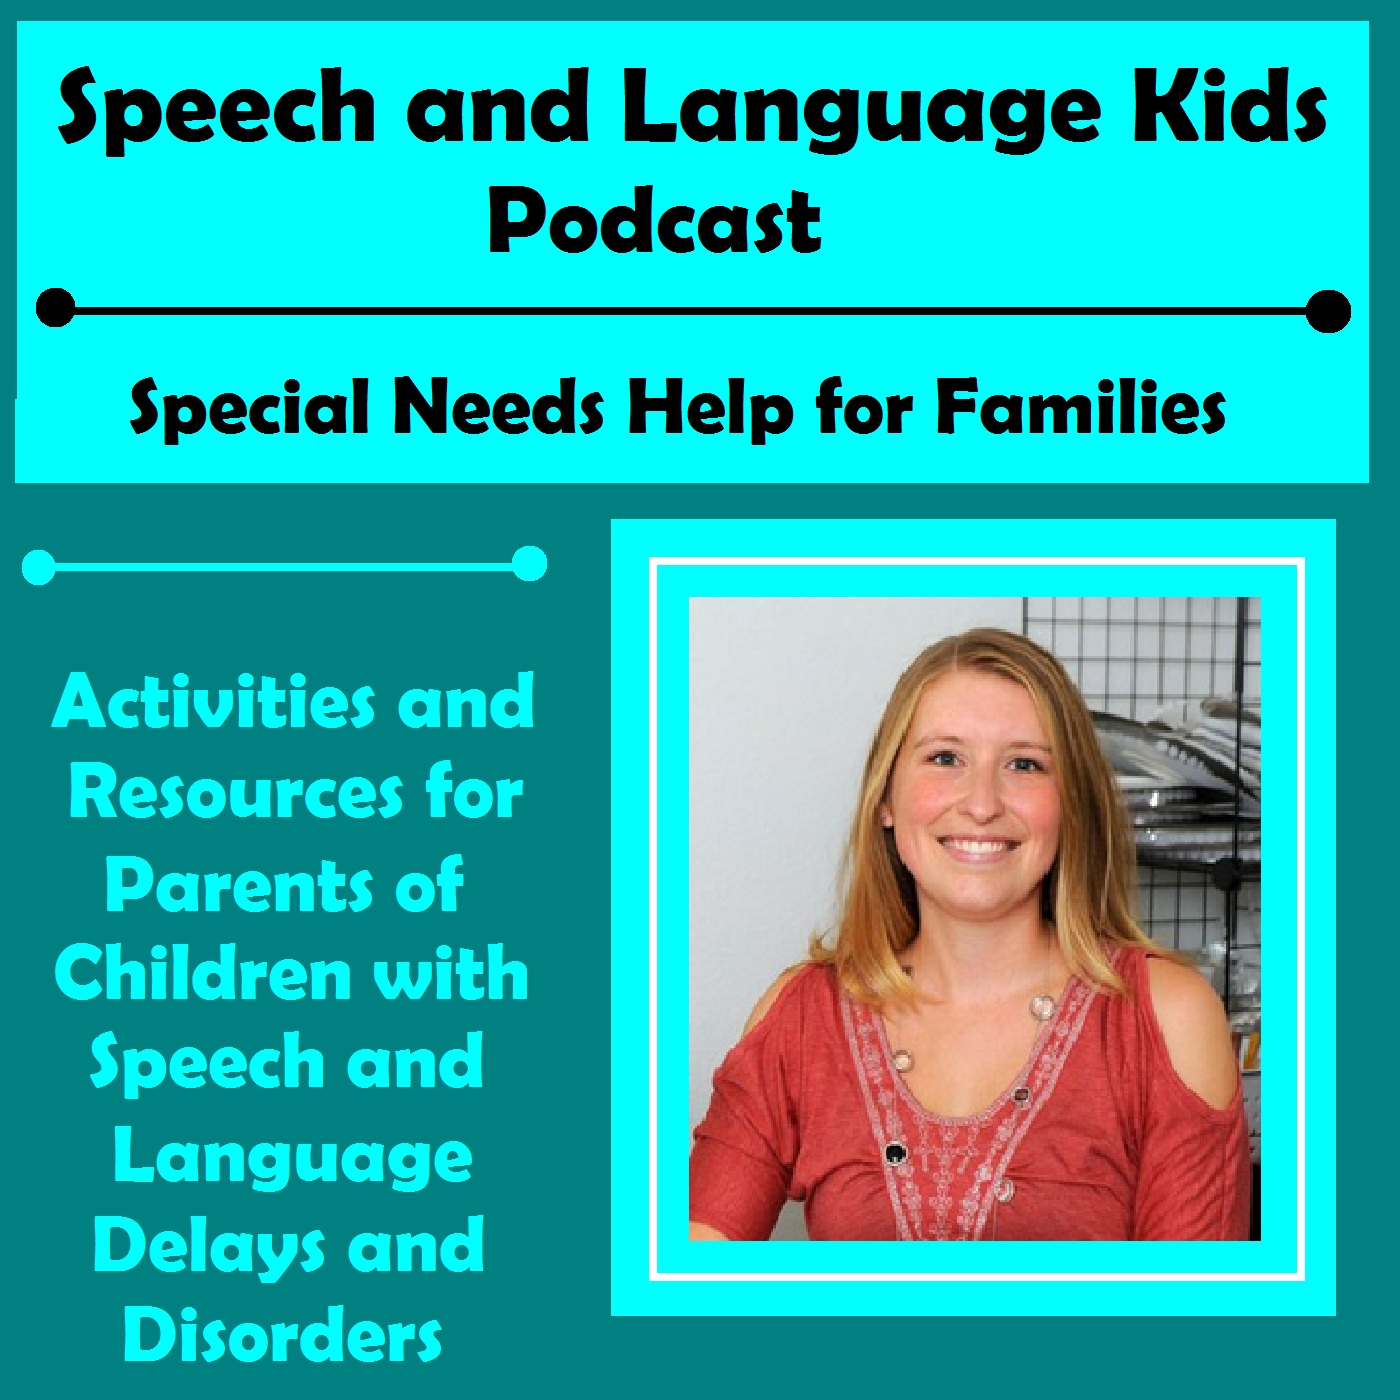 Speech help for children